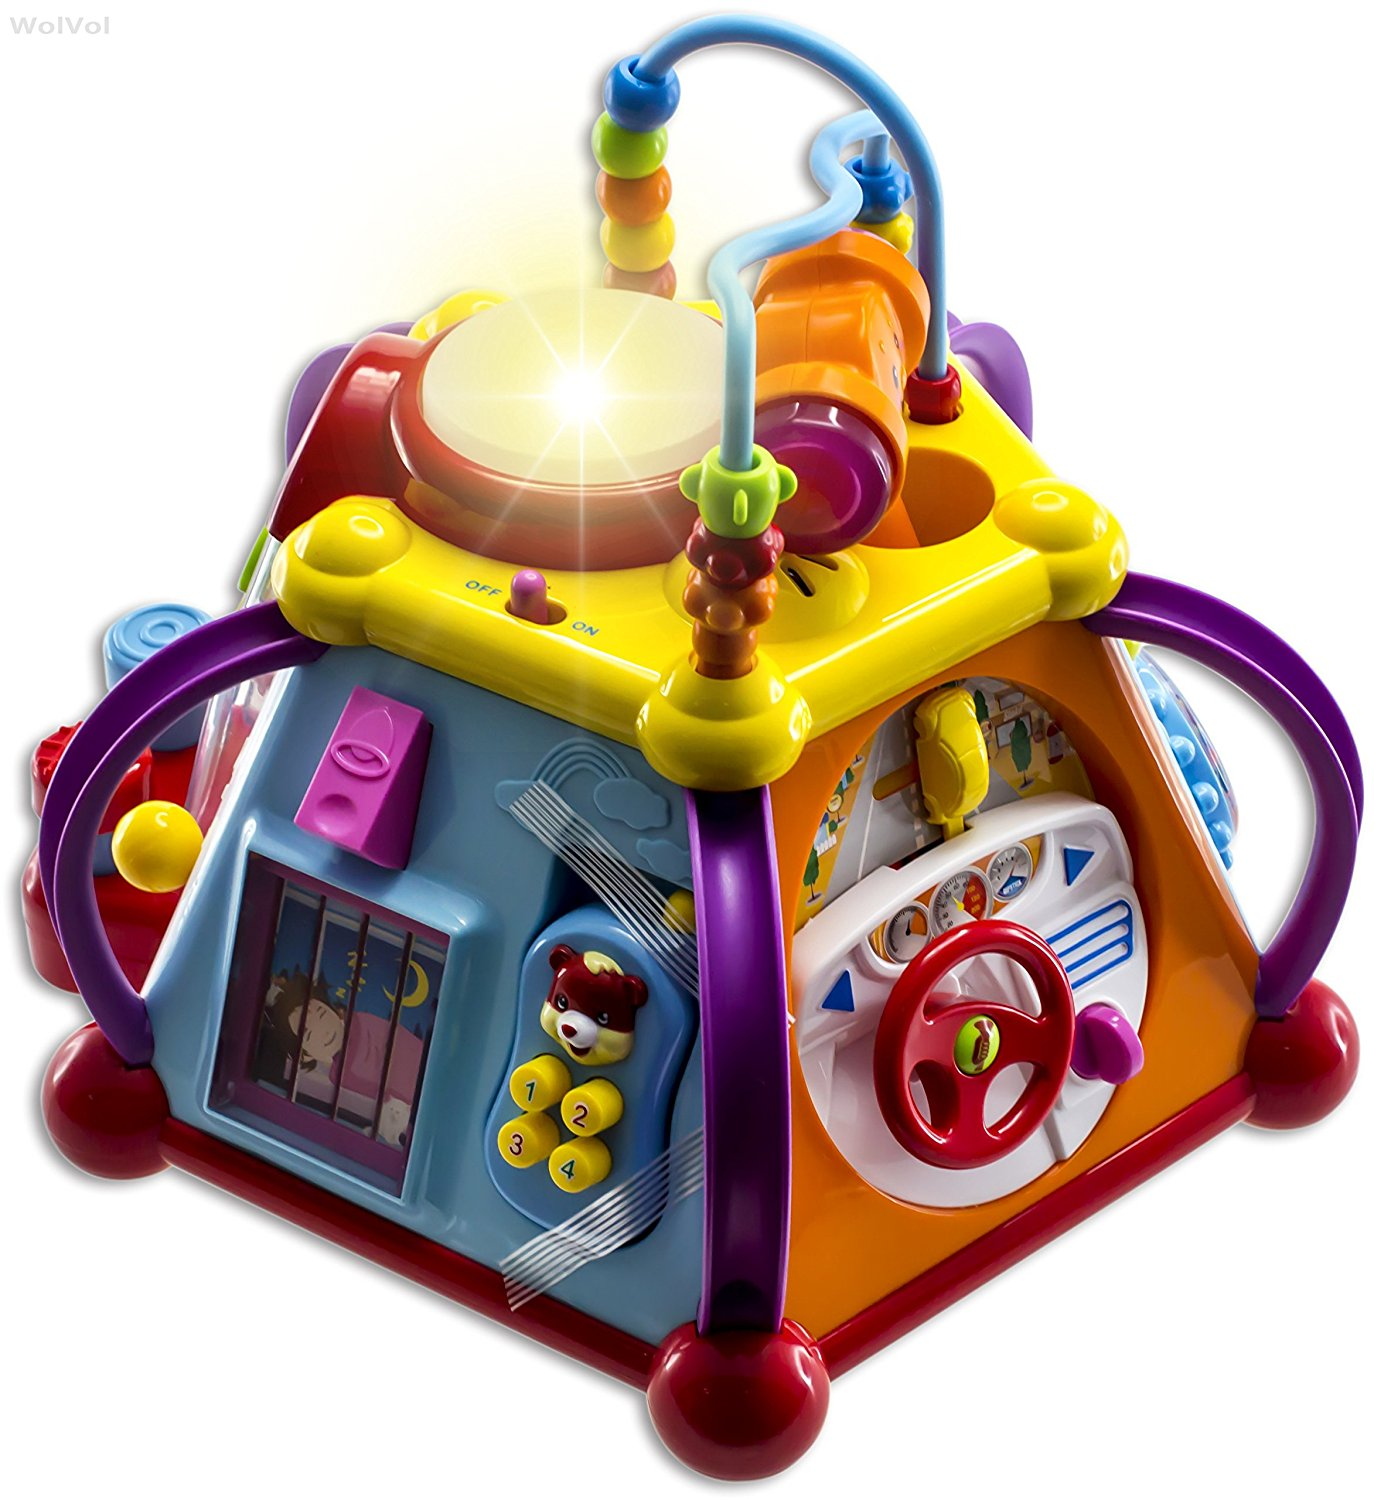 WolVol Musical Activity Cube